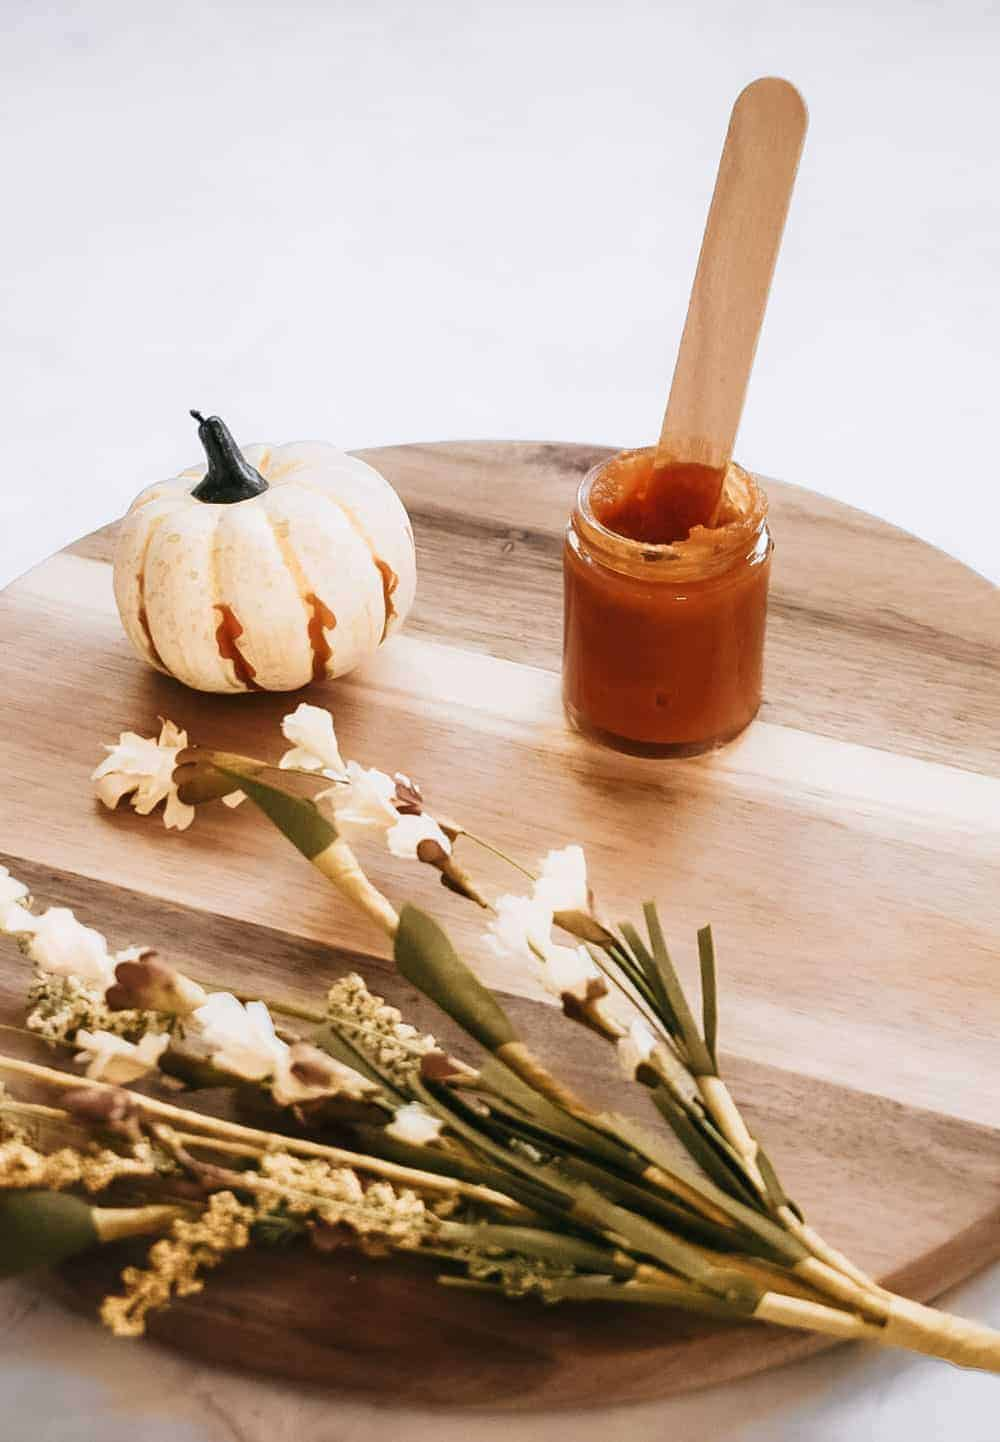 DIY pumpkin enzyme face mask sitting on cutting board next to pumpkin and fall foliage